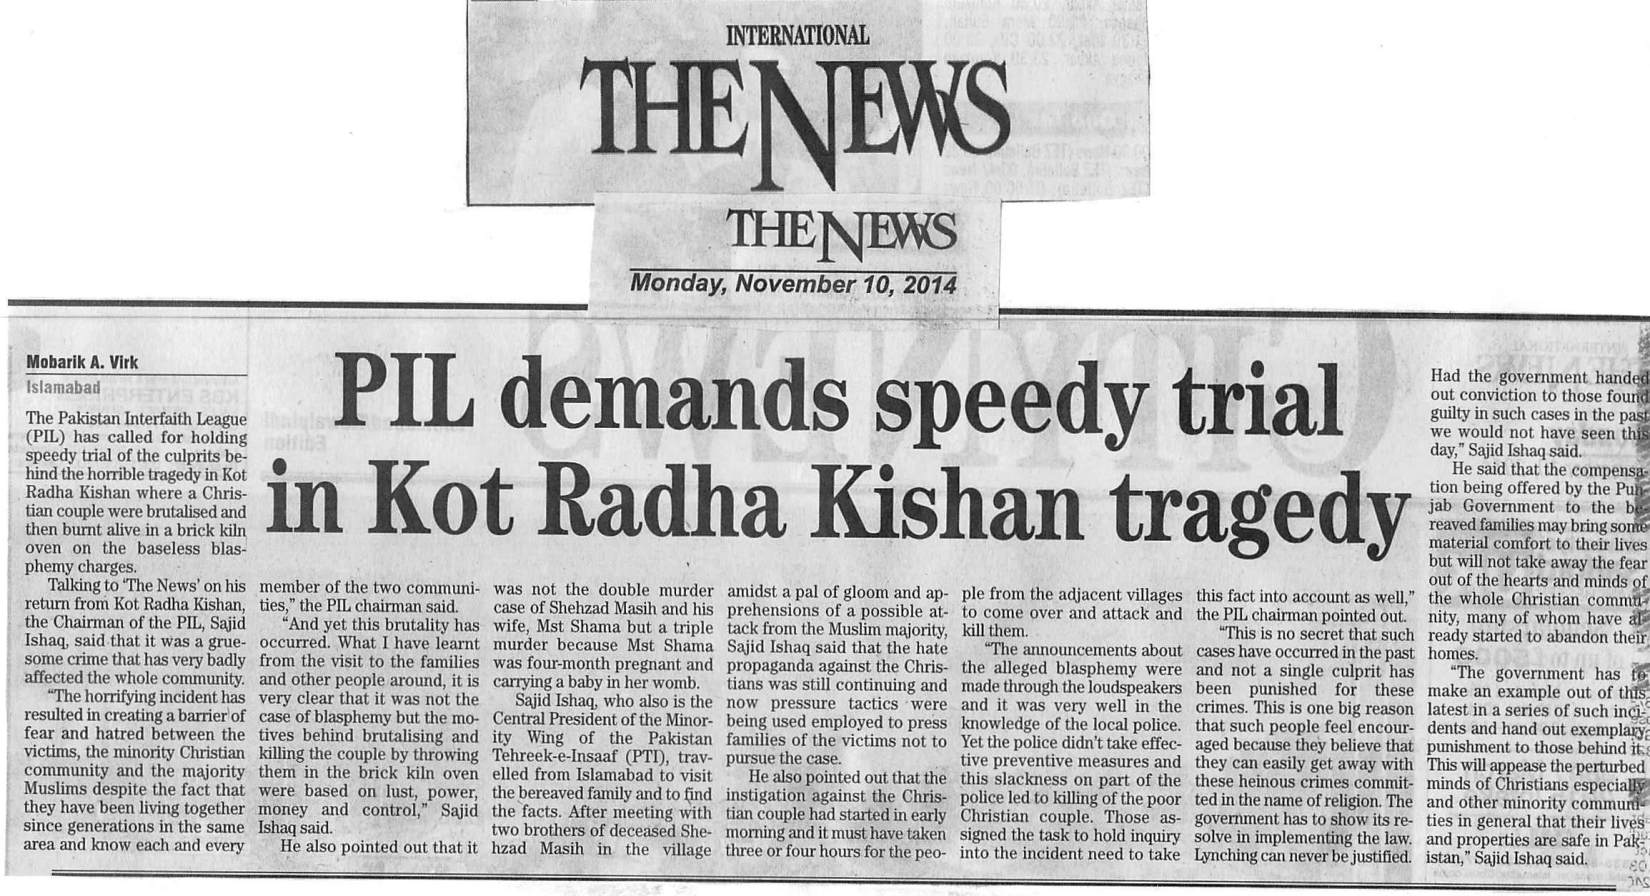 PIL demands speedy trial in Kot Radha Kishan tragedy